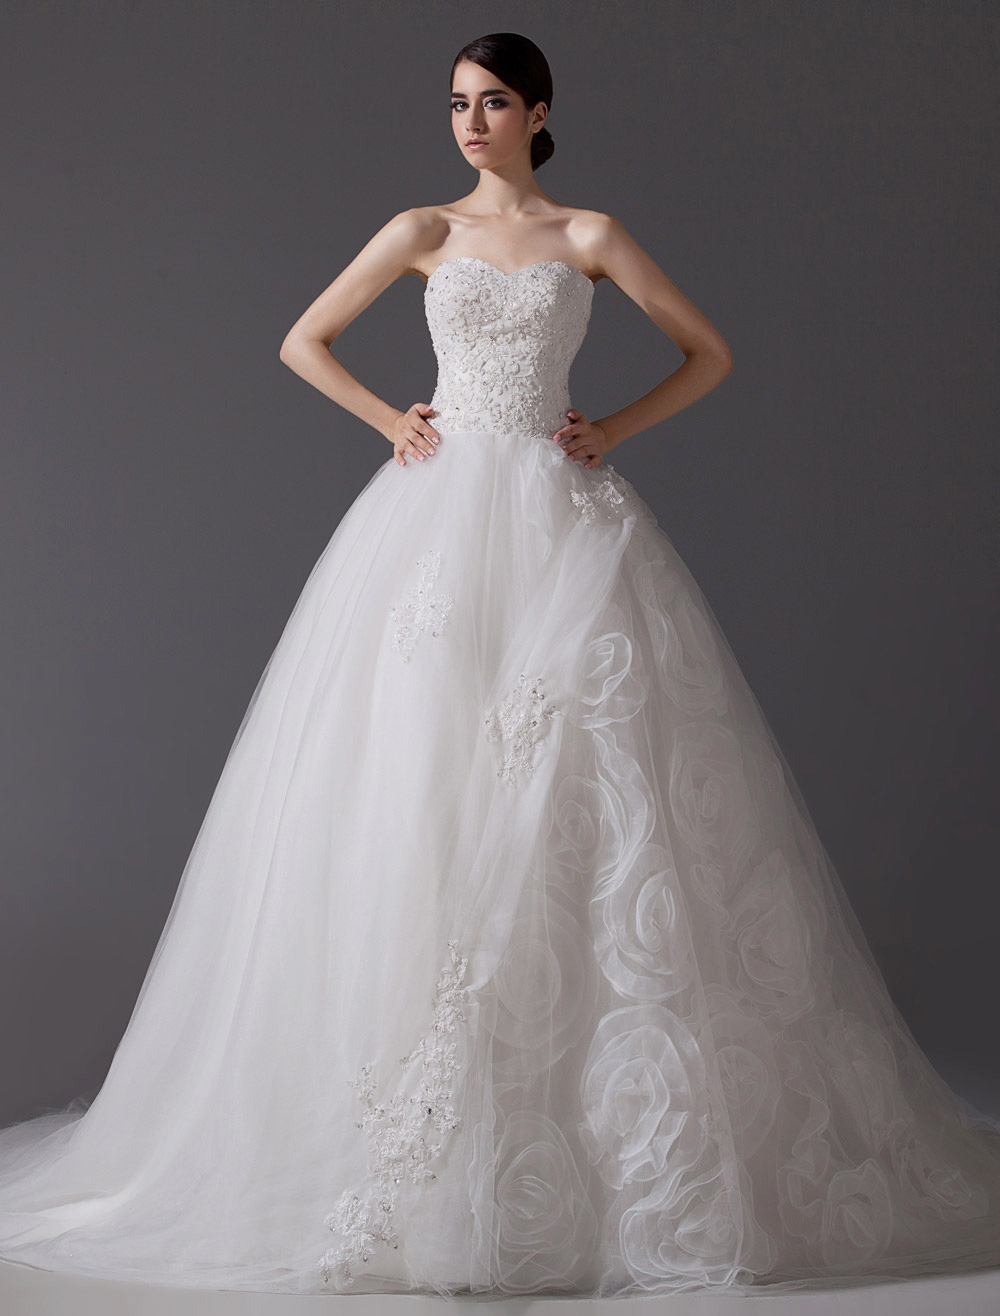 Cathedral Train Ivory Sweetheart Neck A-line Floral Wedding Dress